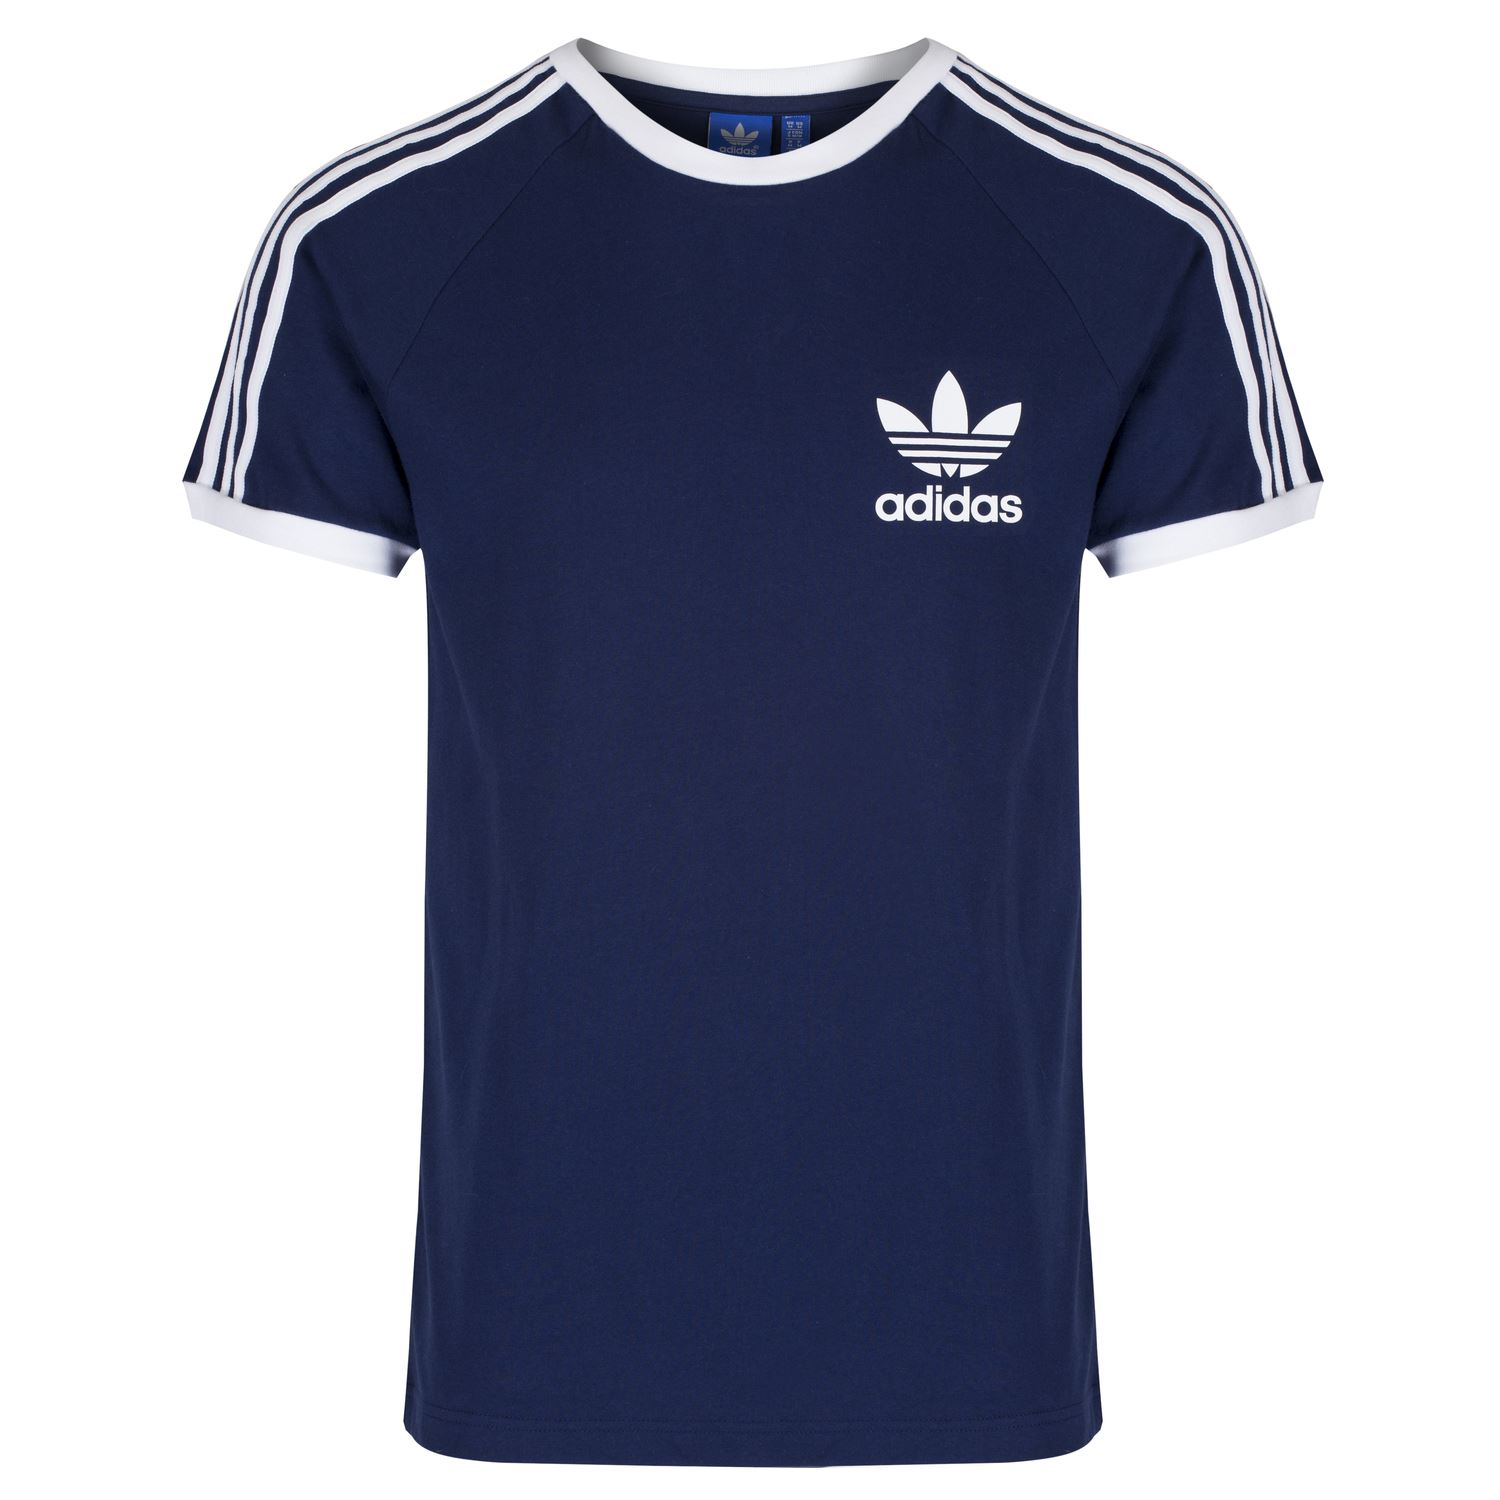 adidas originals men 39 s sport essentials california tee white black navy red s xl ebay. Black Bedroom Furniture Sets. Home Design Ideas